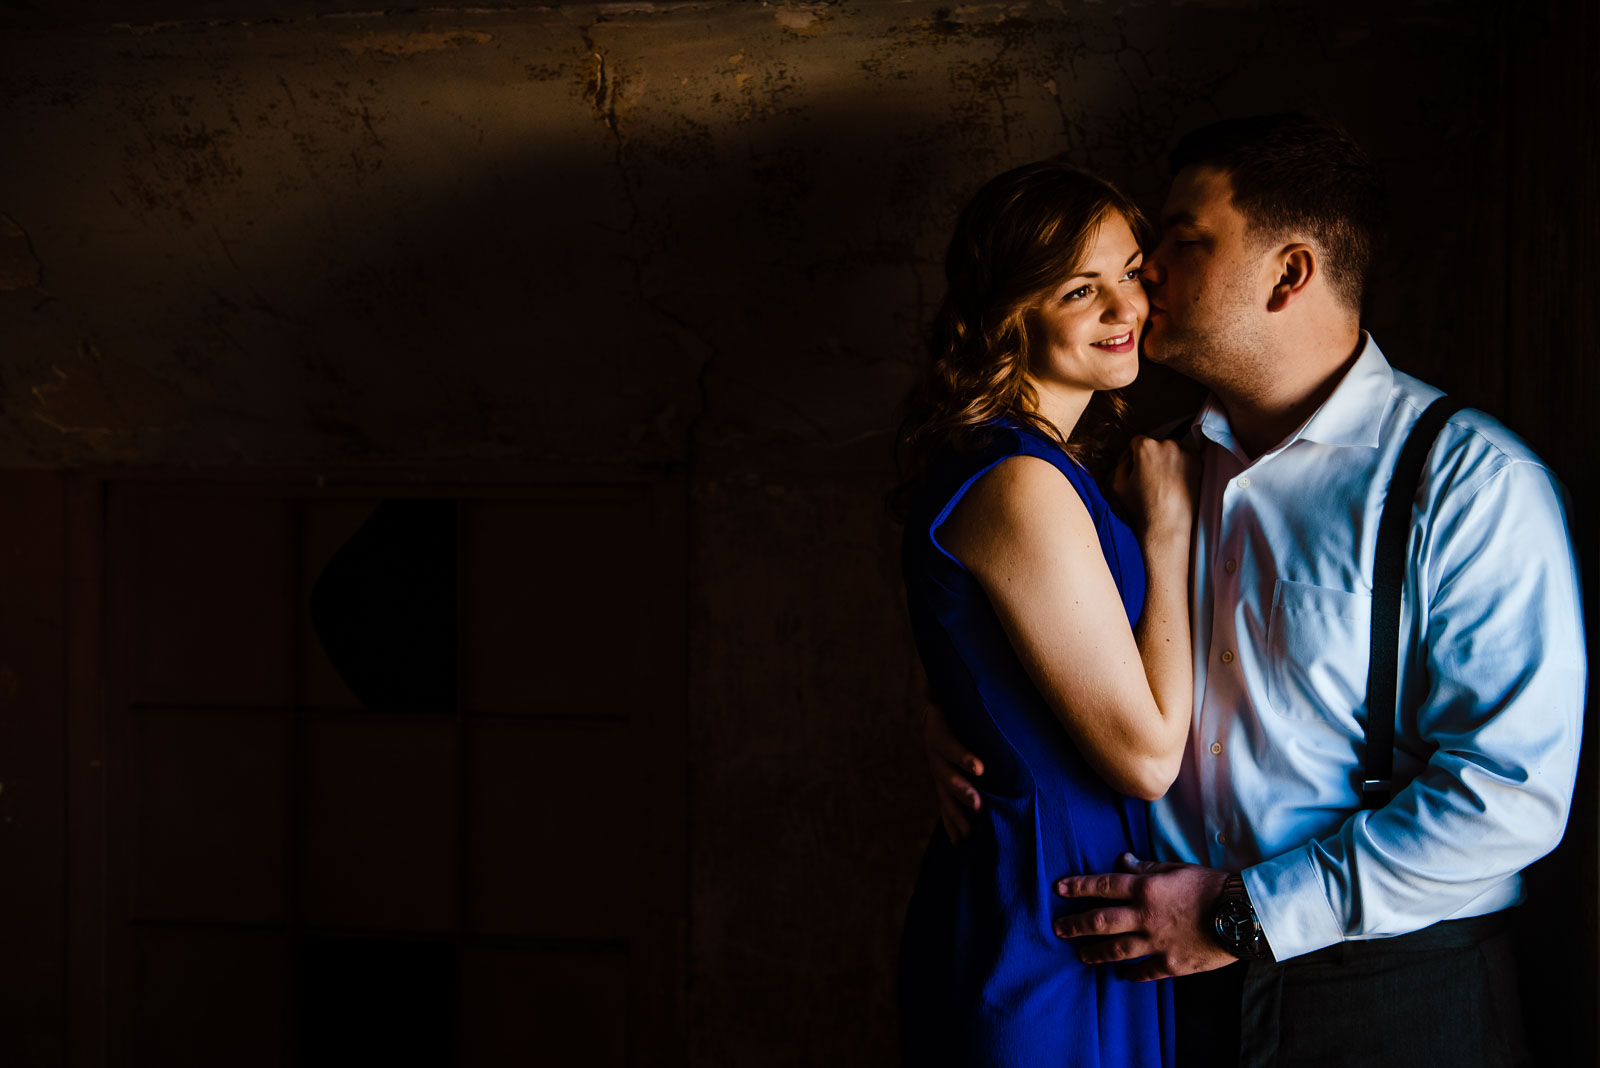 Couple's portrait in natural light